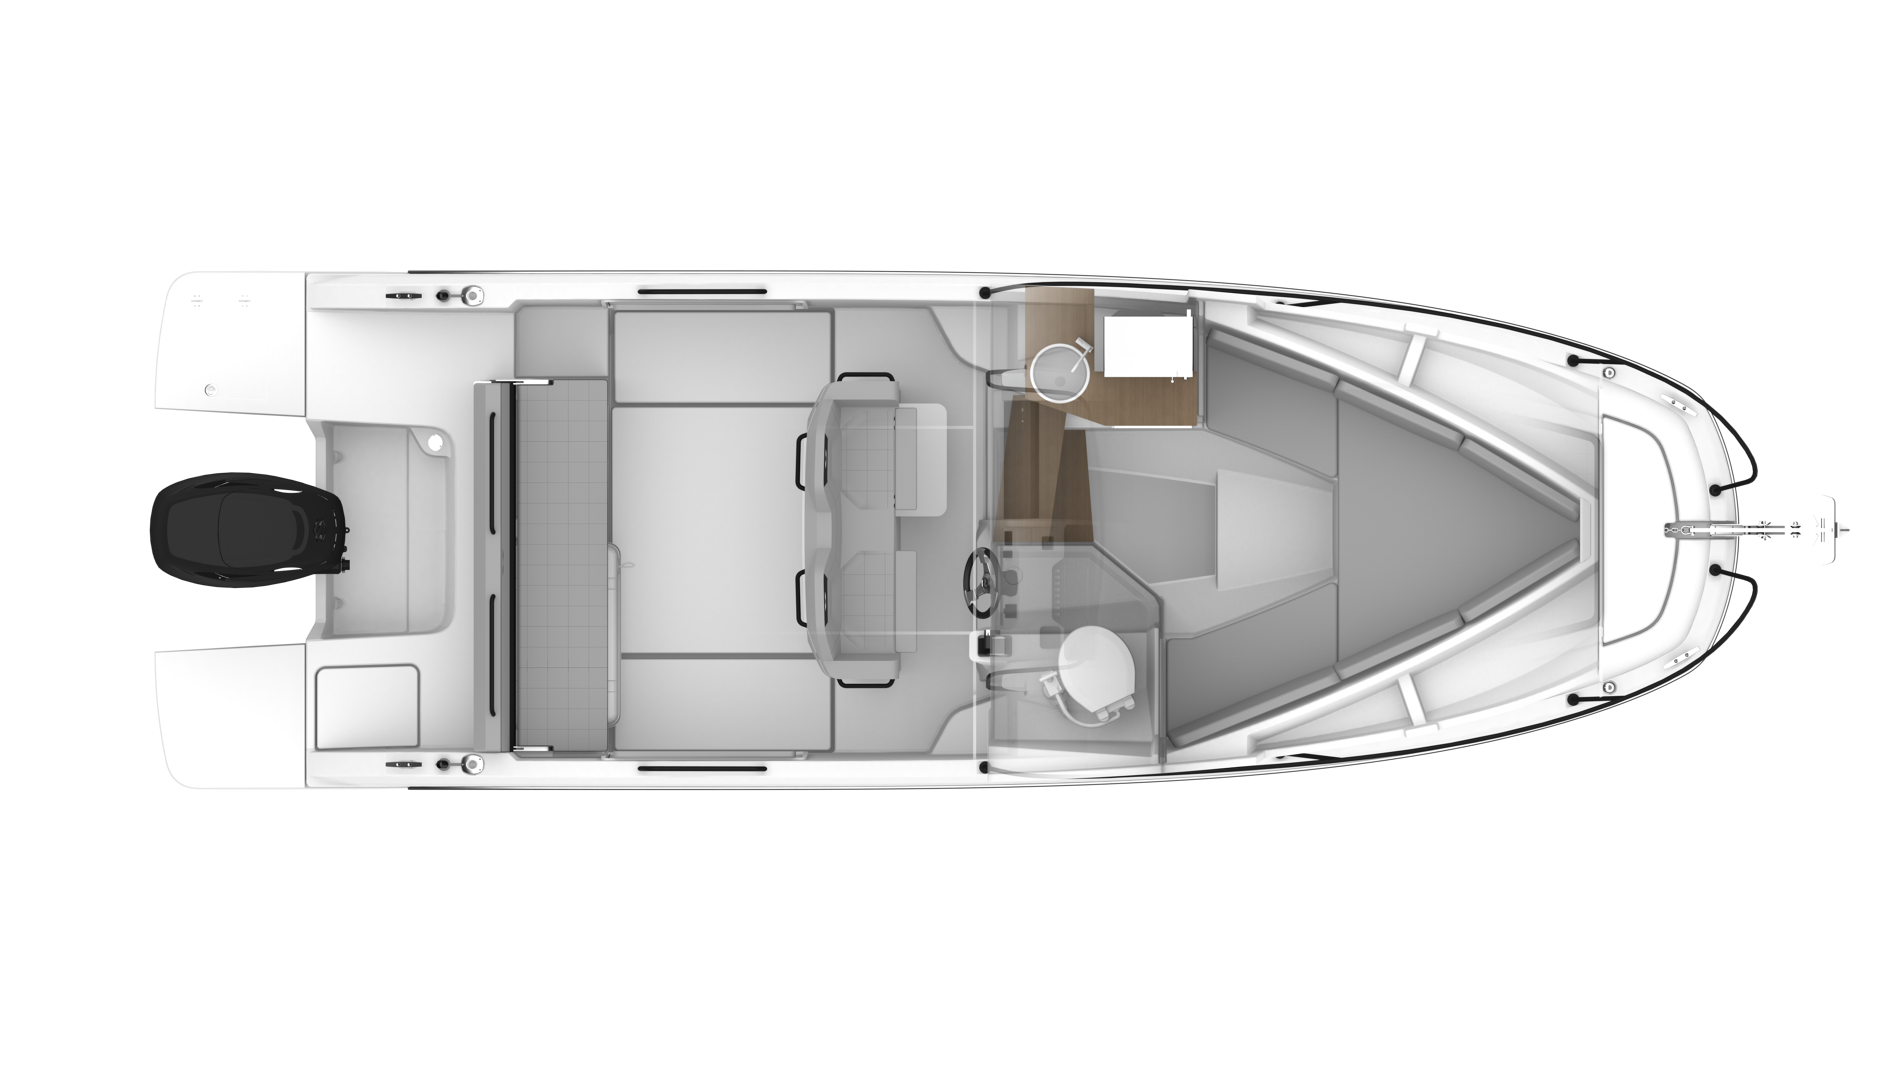 Beneteau F8 Drawing (3)